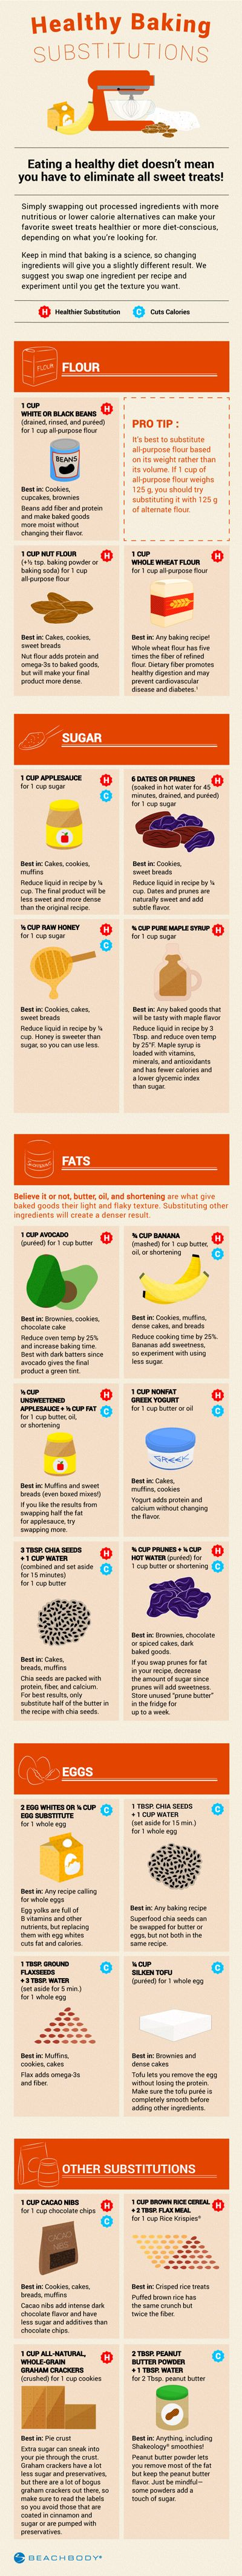 Healthy Baking Substitutions #Infographic - With these swaps you'll be able to enjoy your favorite sweet treats this holiday season! #BeachbodyBlog